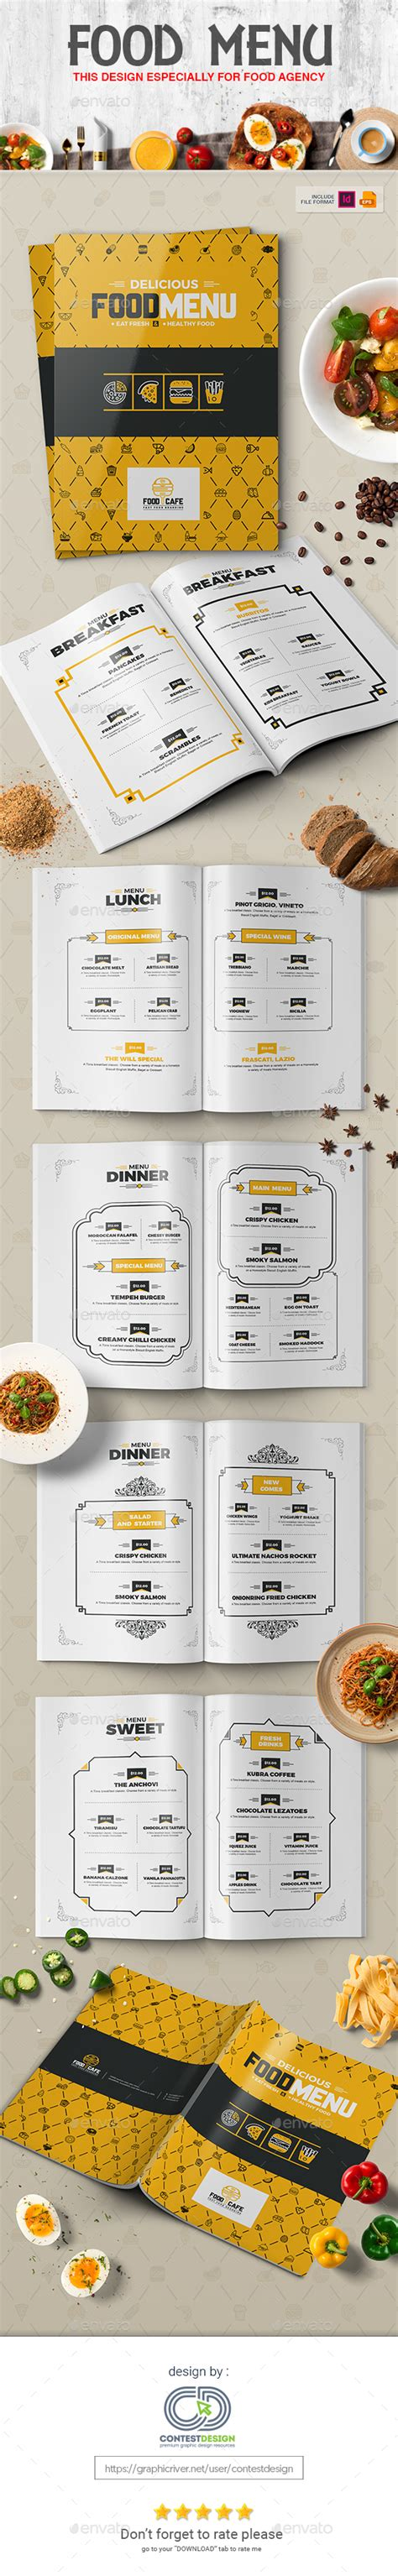 food menu design template for fast food restaurants